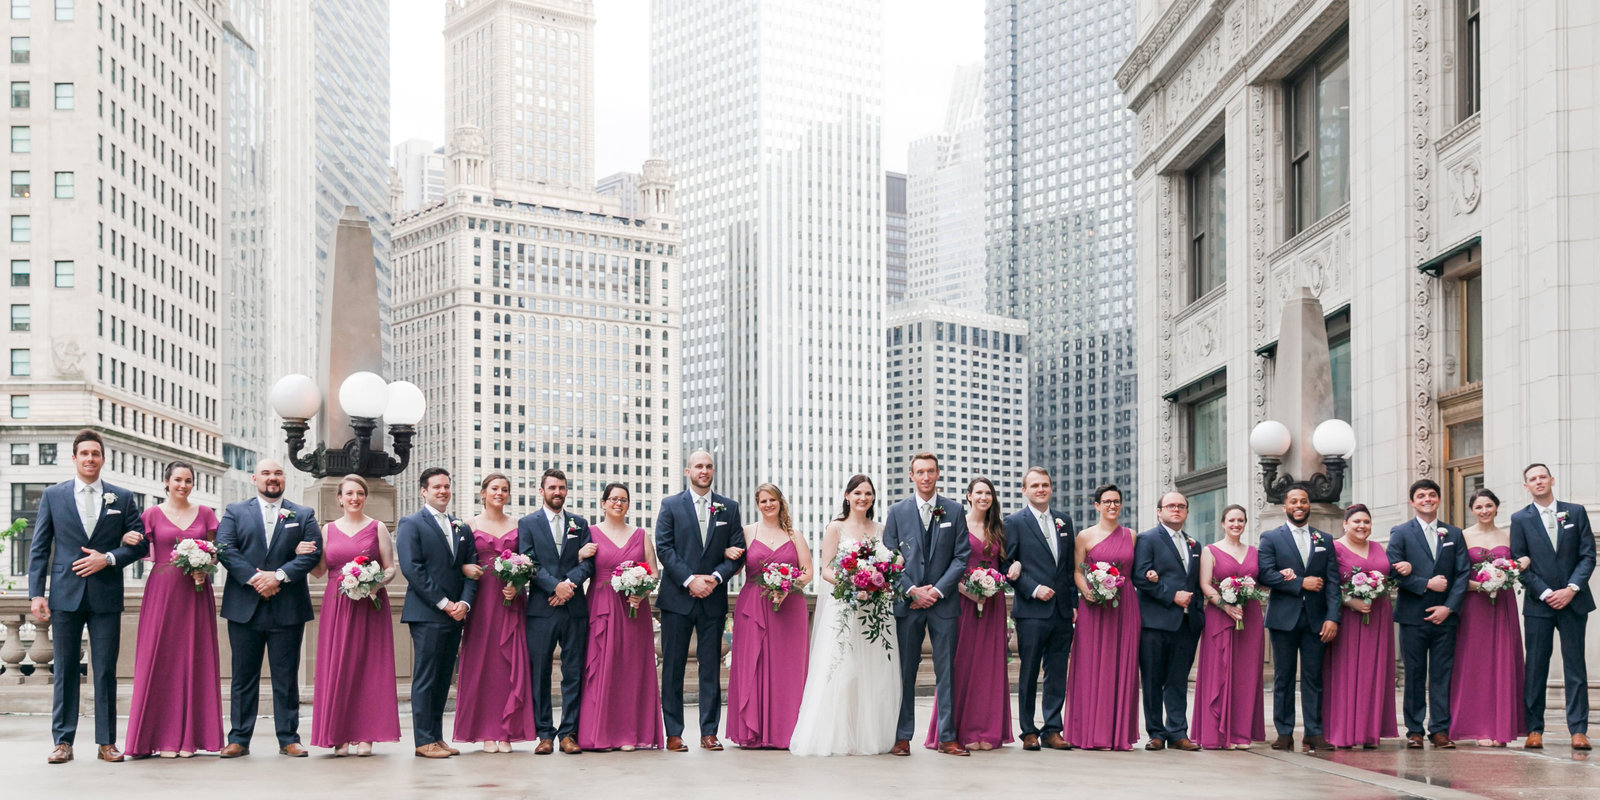 Chicago Wedding Photographer | Janet D Photography | Londonhouse Wedding Photography